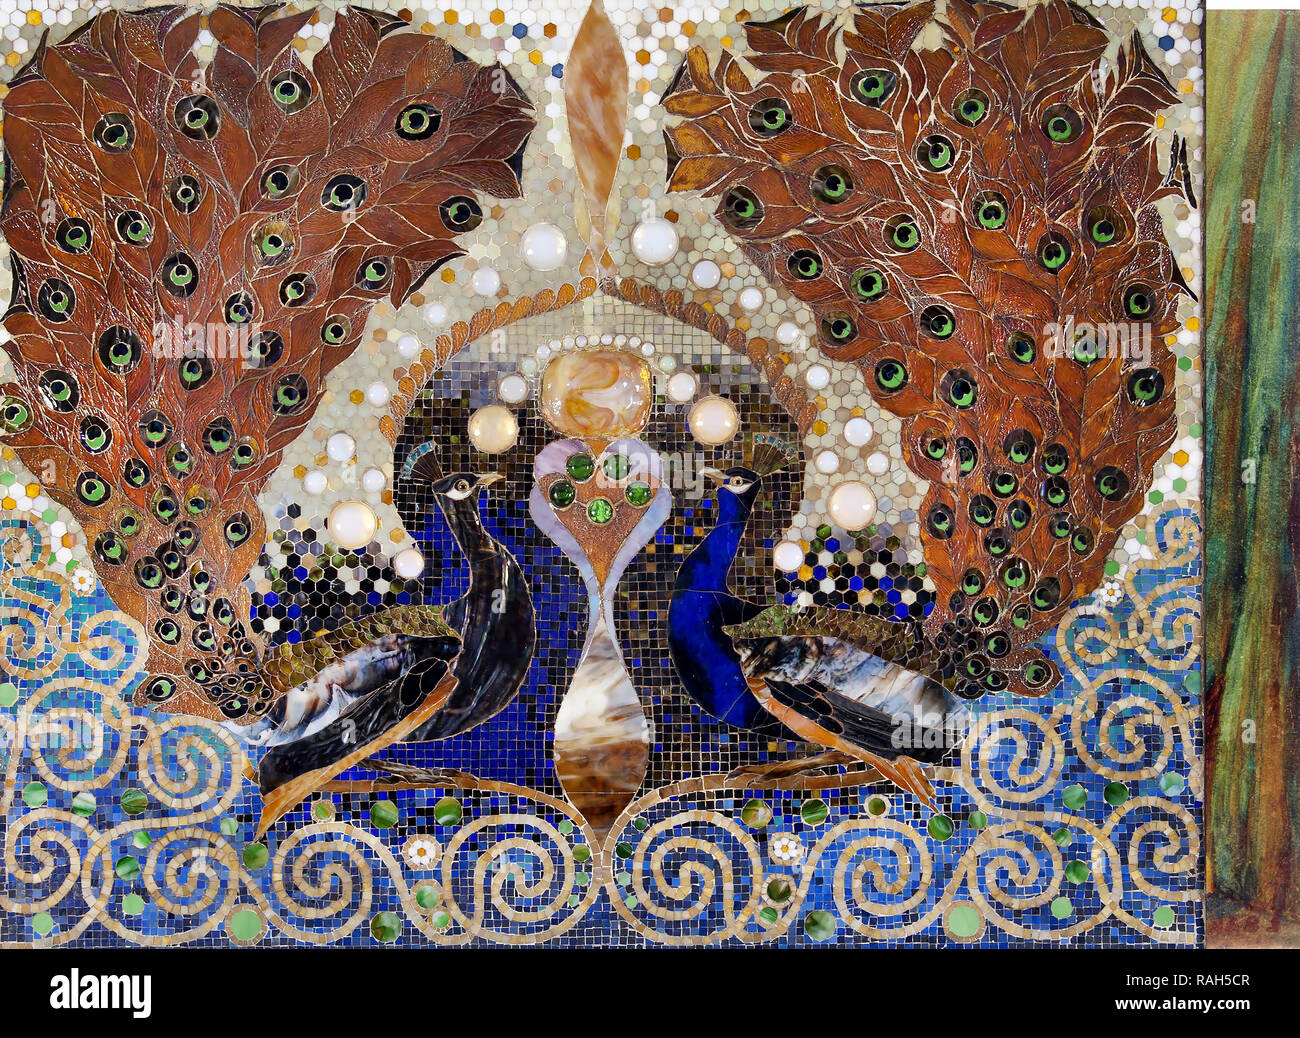 Louis Comfort Tiffany, Peacock Mosaic from Entrance Hall of the Henry O. Havemeyer House, New York 1890-1891 Favrile glass, pottery, and plaster, University of Michigan Museum of Art. - Stock Image